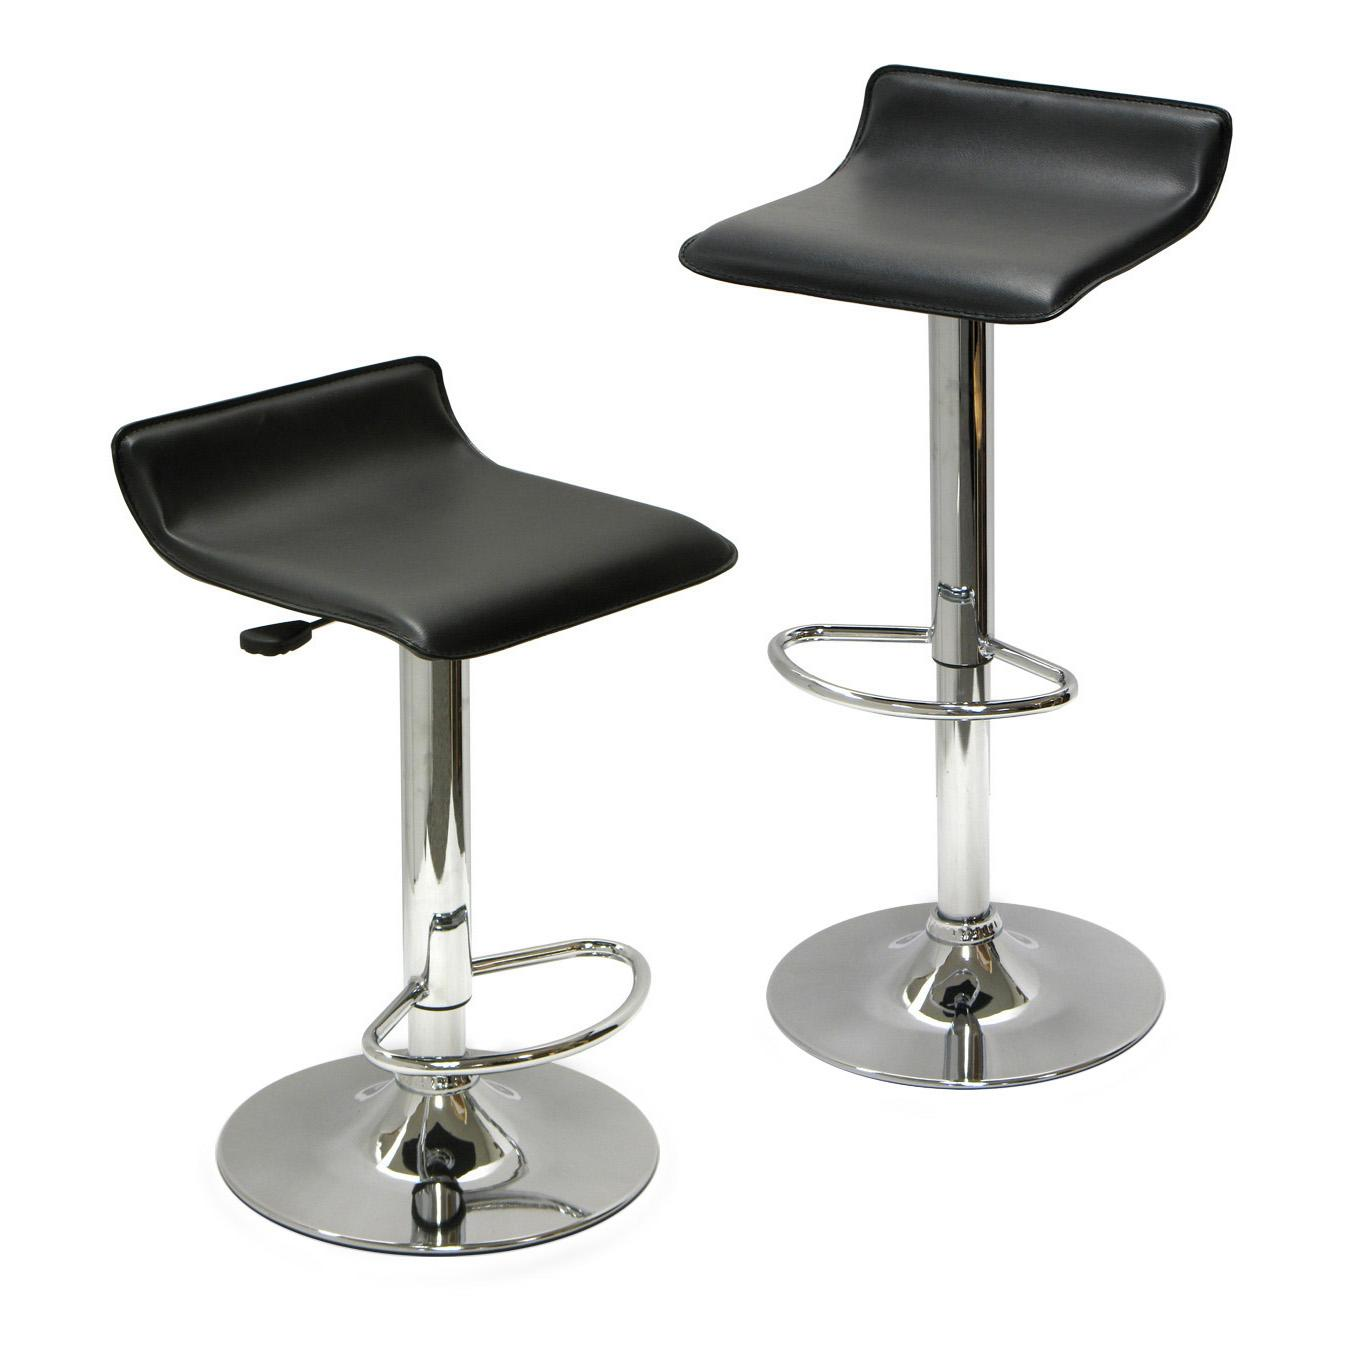 adjustable bar stools view larger NKNKGQR